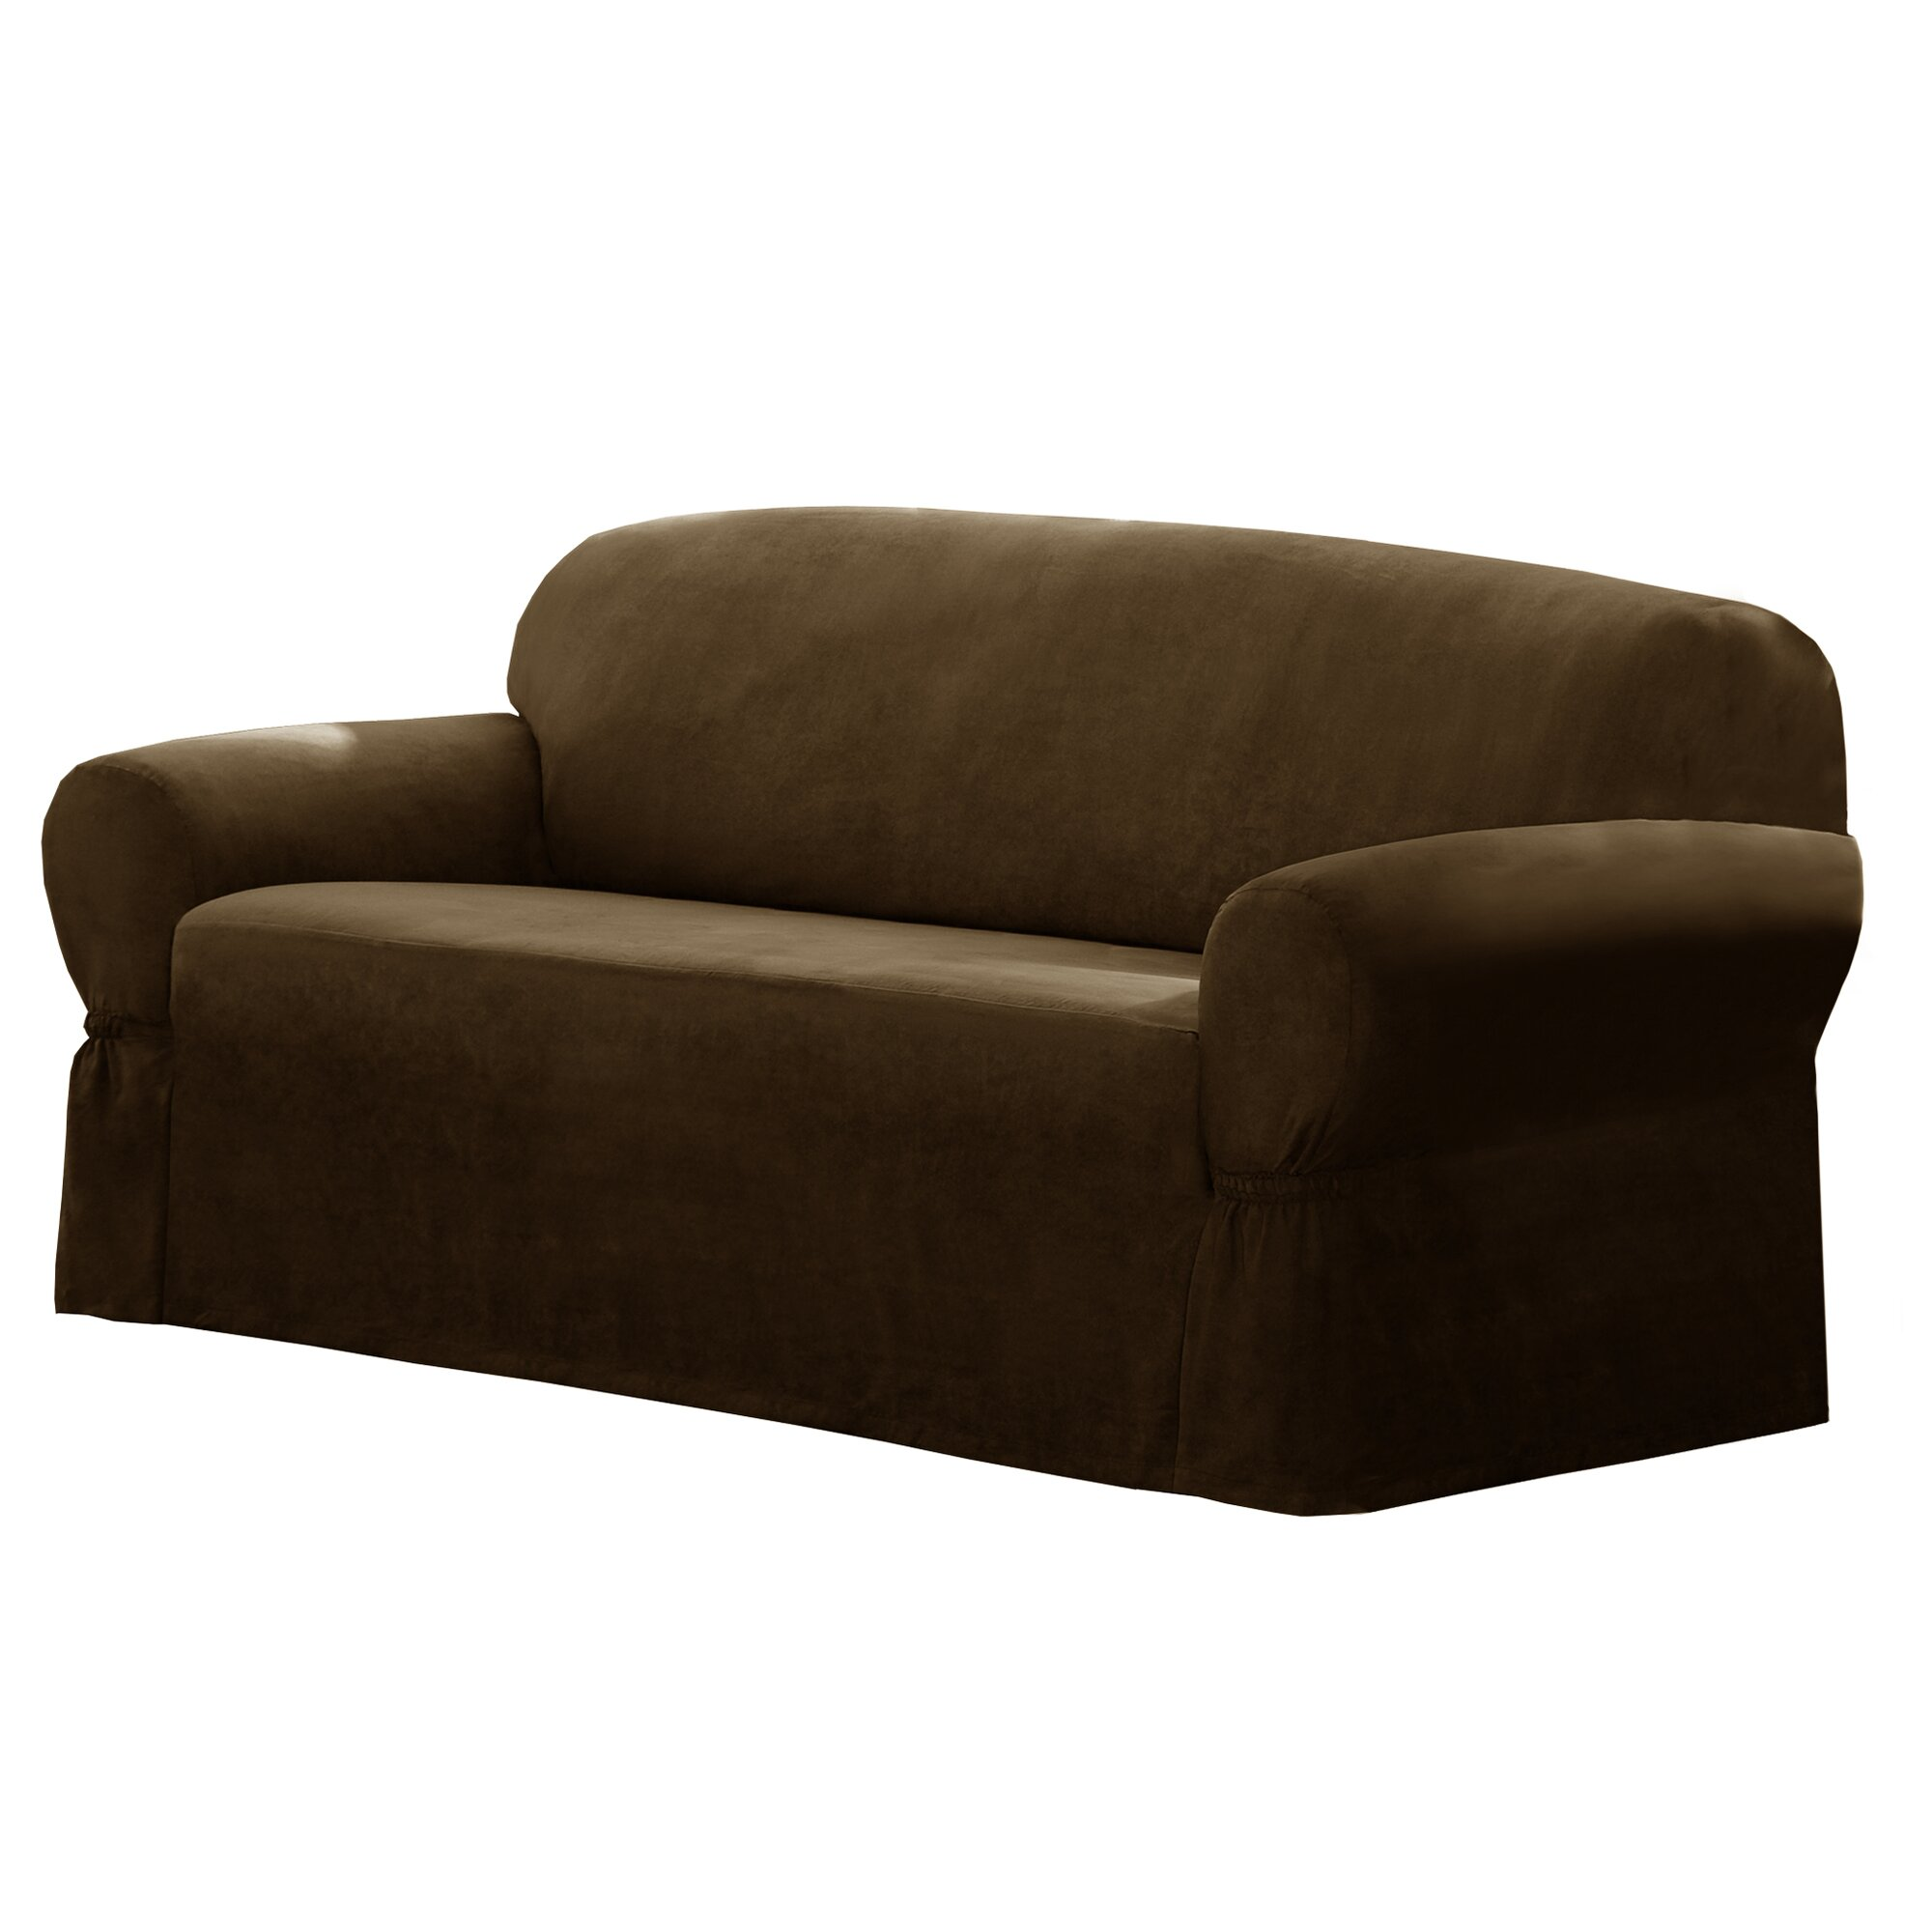 T cushion sofa do i have a square cushion or t cushion for Sofas t dos opiniones